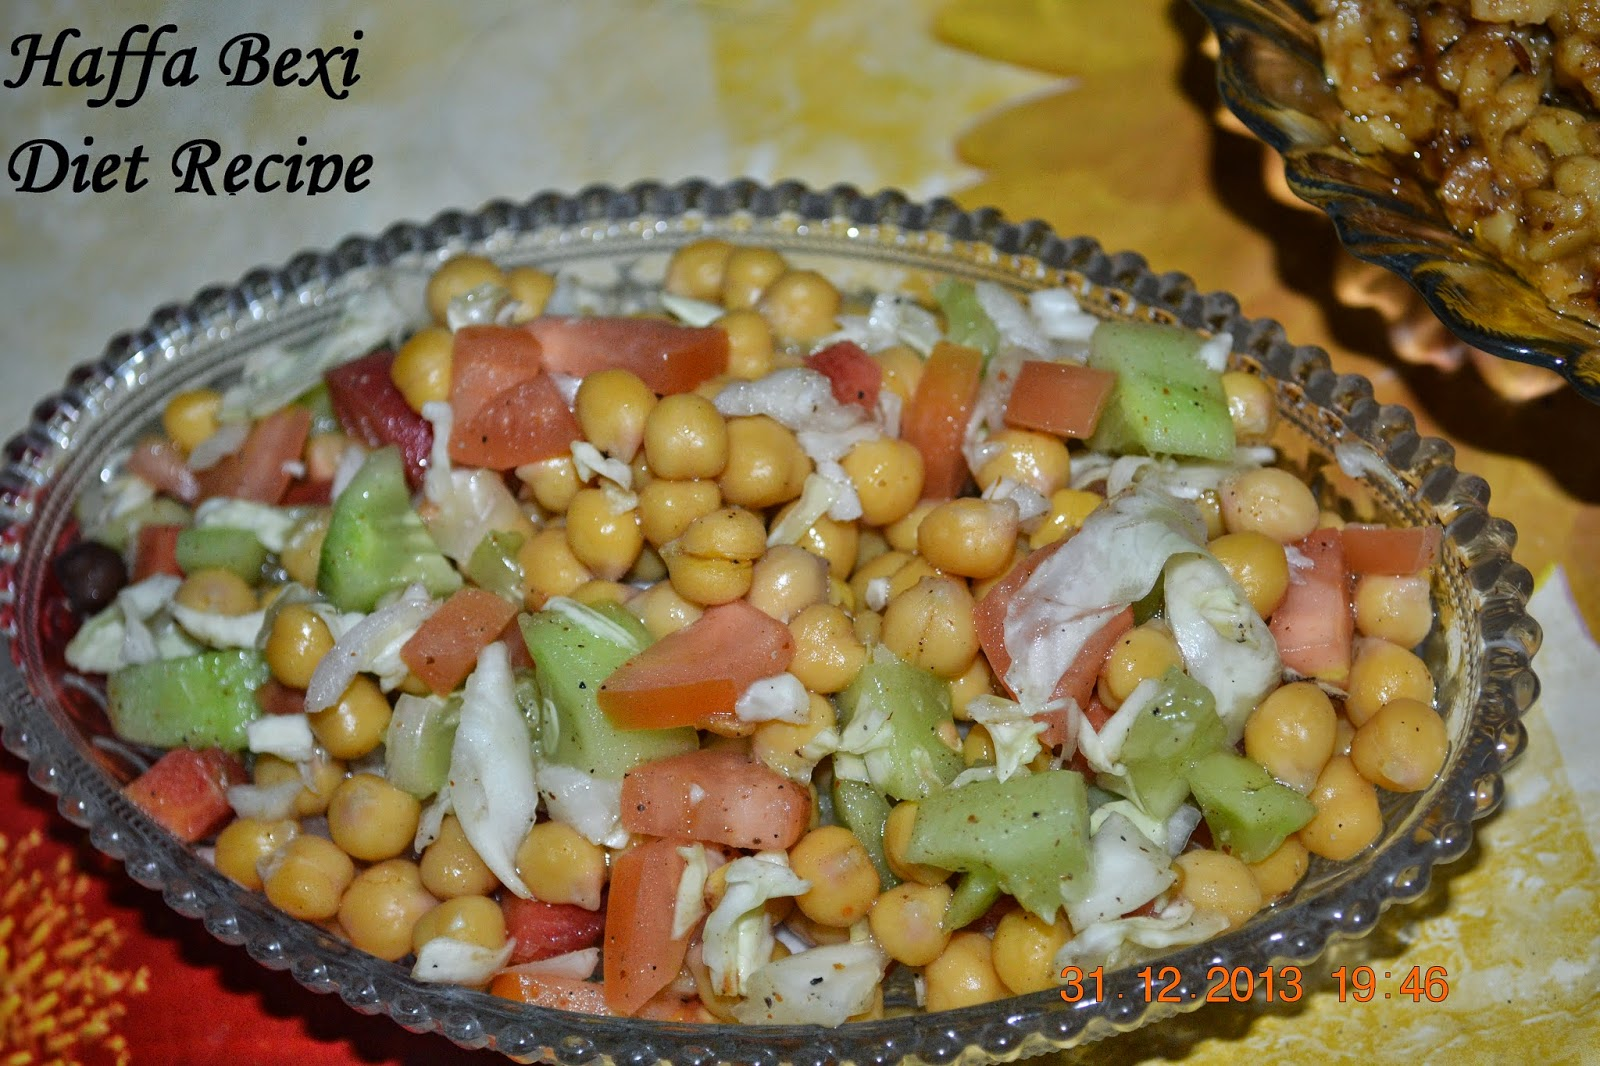 Diet recipes, weight loss recipes, chickpea salad, salads, chickpea salad recipe, chickpea salad recipes, chickpeas salad, chick pea salad,